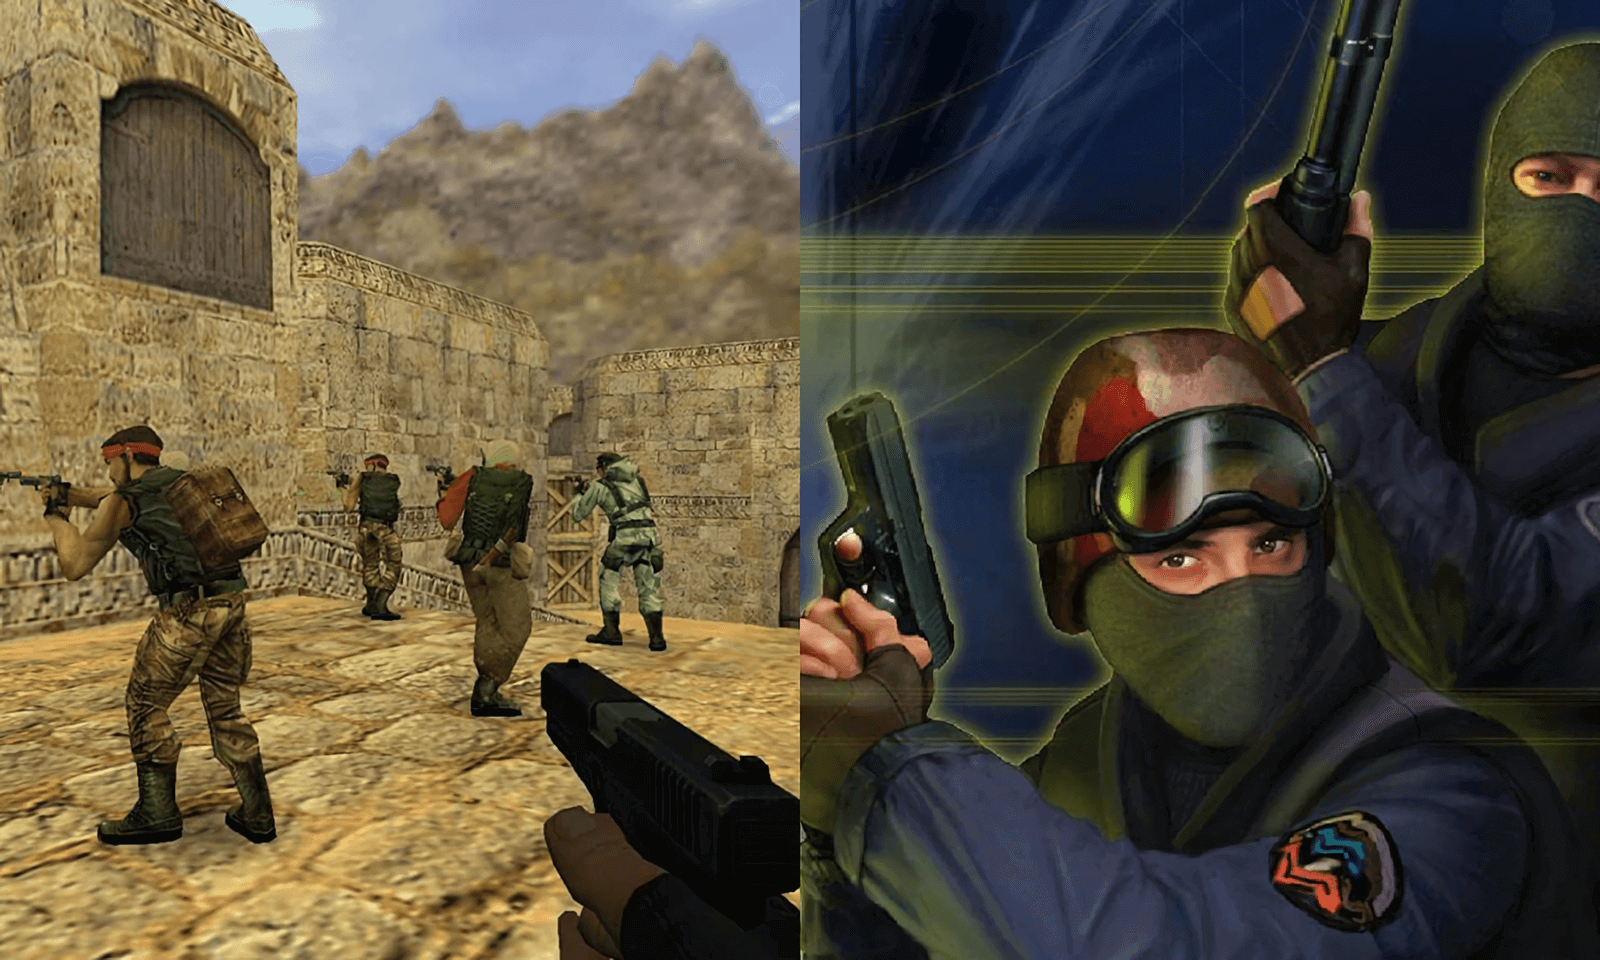 Counter-Strike 1.6 can now be played in your web browser